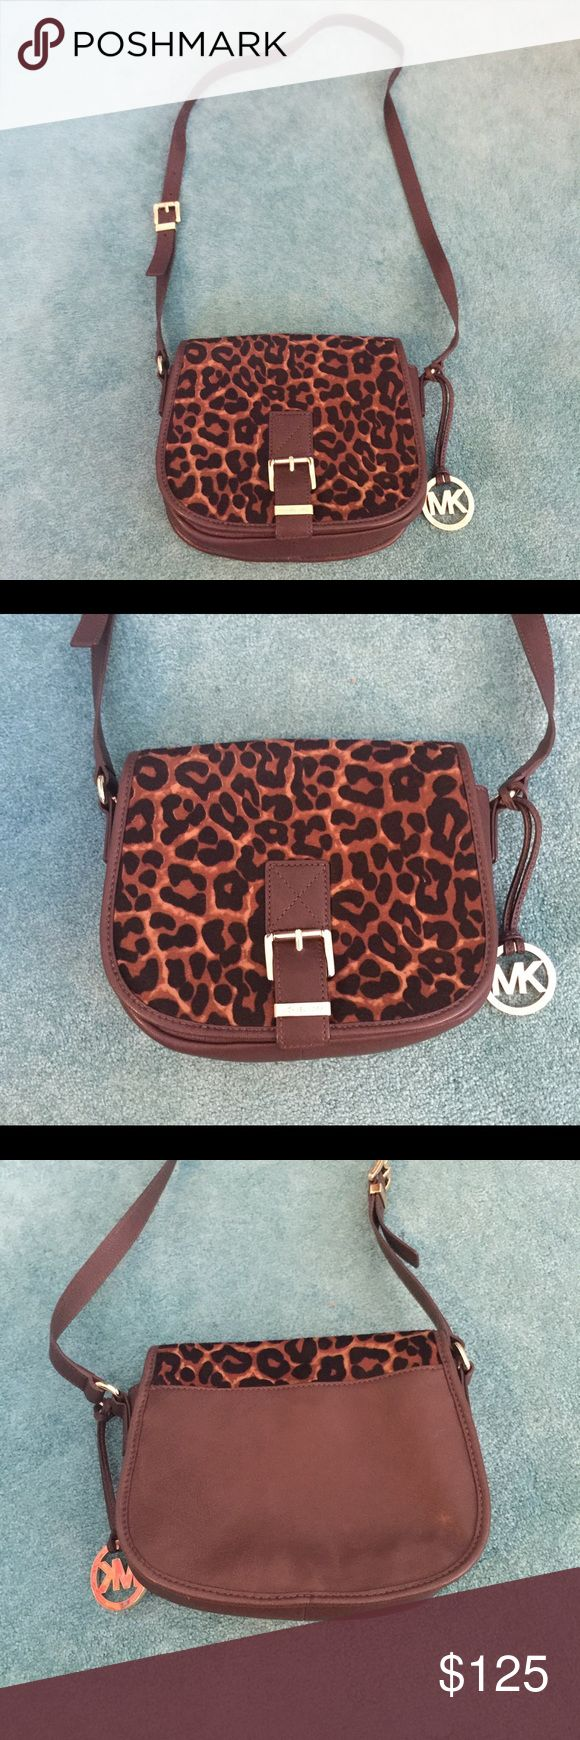 💙Michael Kors Crossbody Bag❤️ Beautiful MK leopard cross body bag with brown leather and gold logo.  Good condition! Small size bag Michael Kors Bags Crossbody Bags